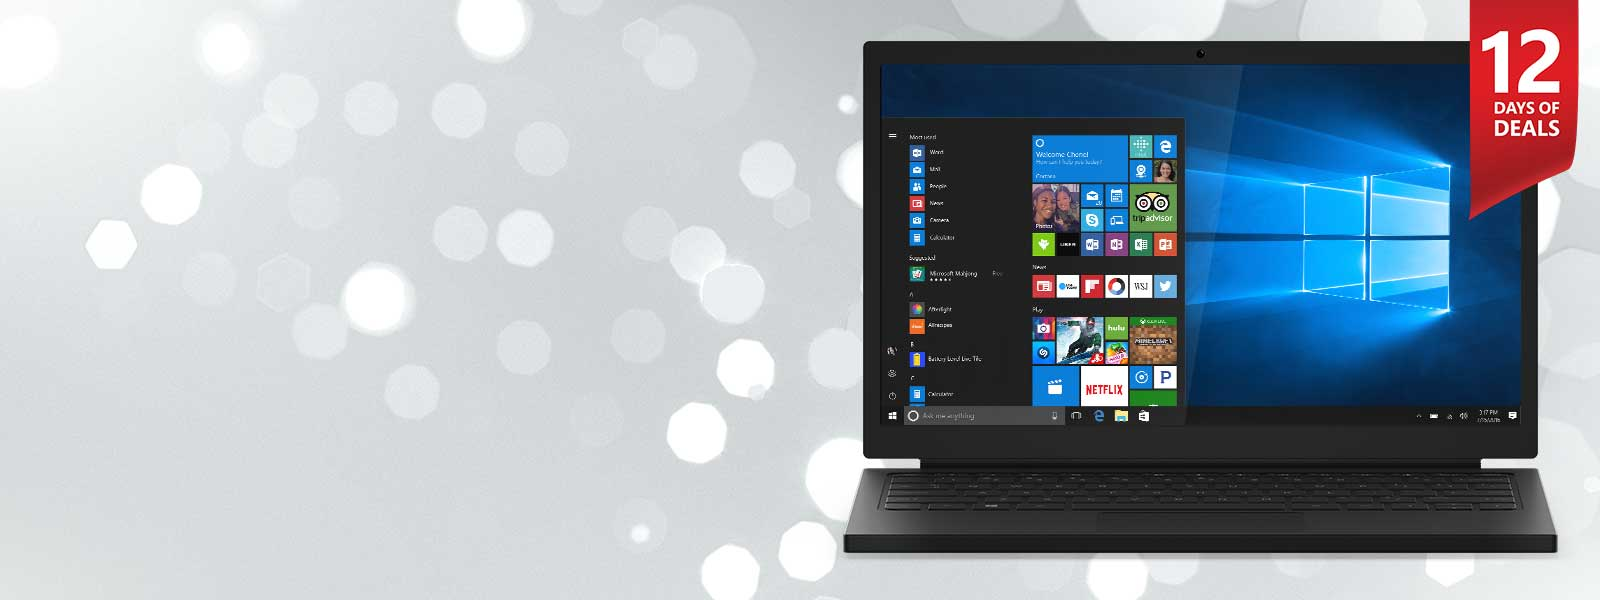 Laptop facing front with Windows start menu open on screen with festive sparkles behind it on a light grey background